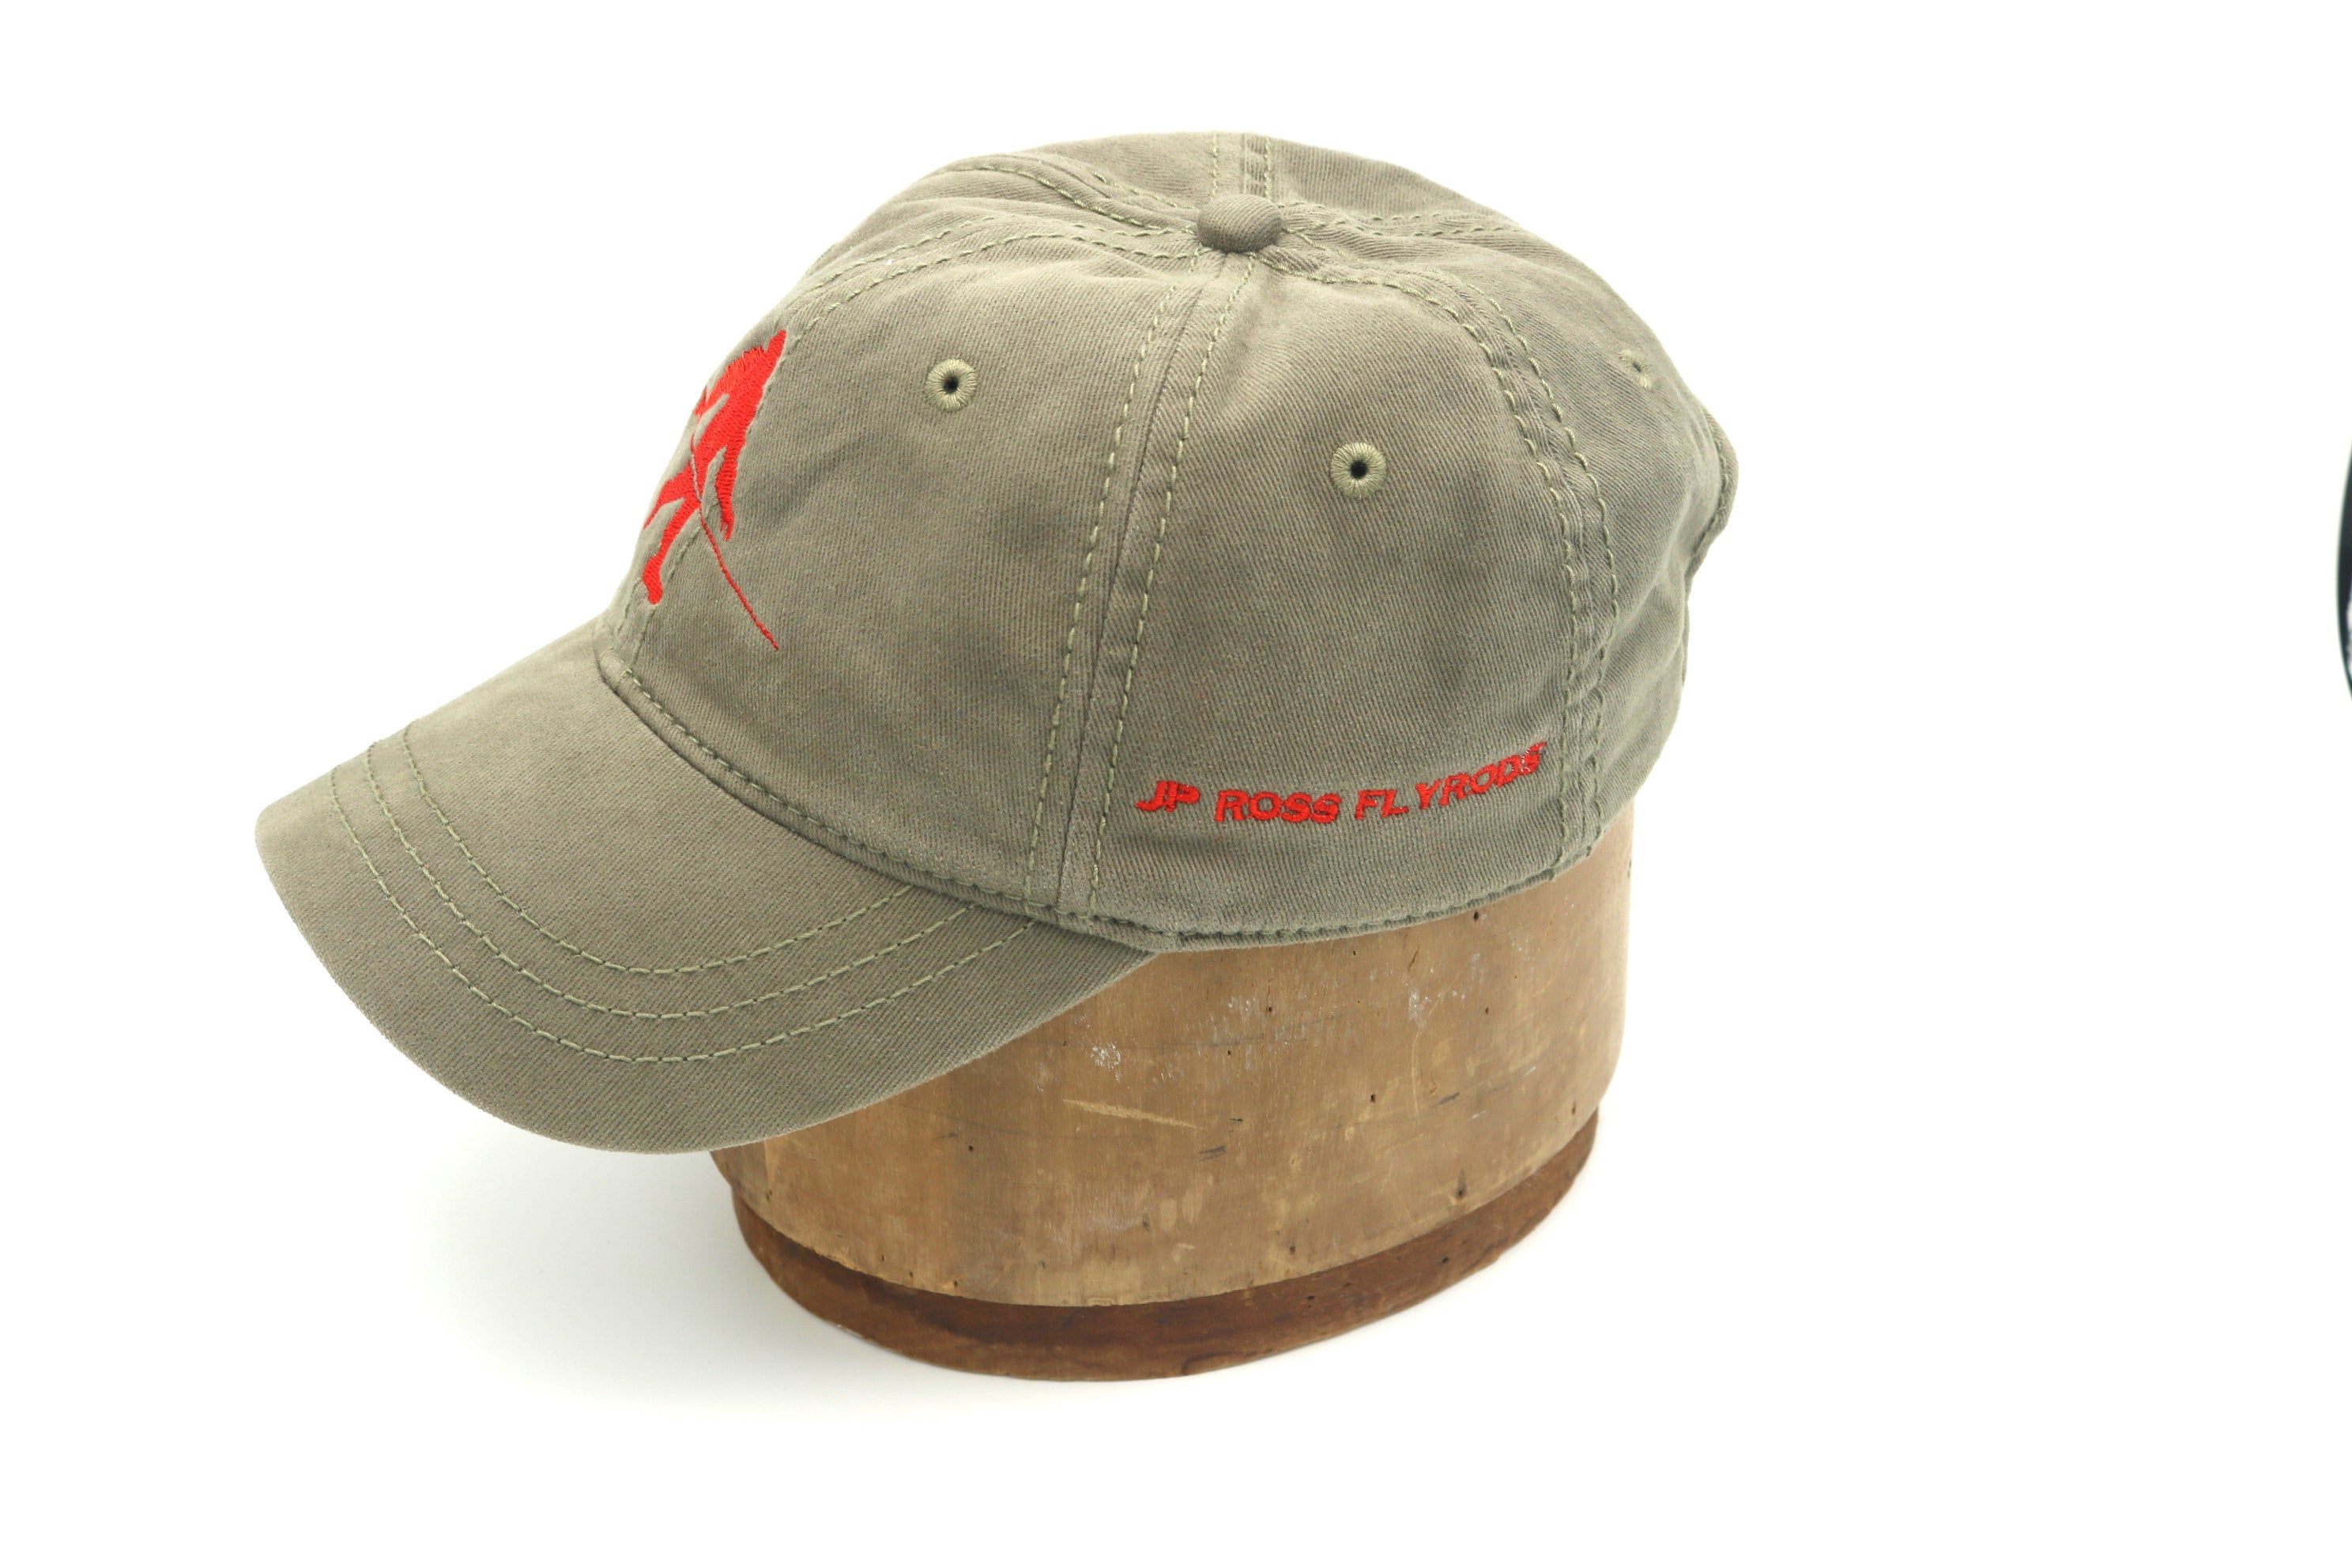 Get Outside. Bigfoot with fly rod olive cap